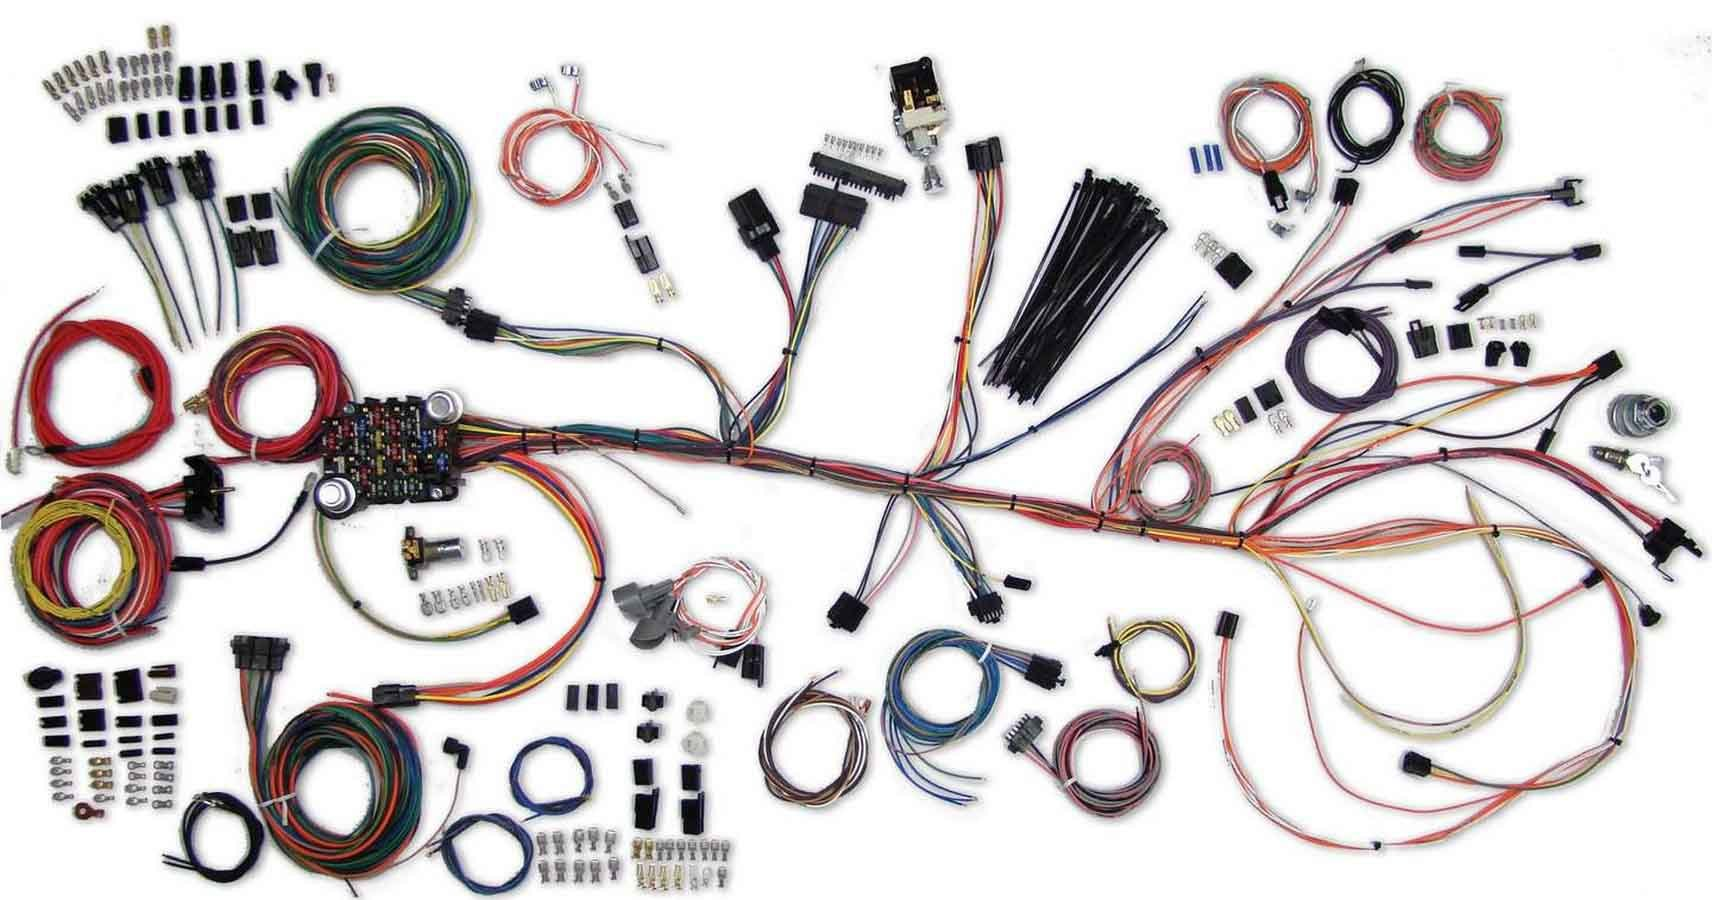 American Autowire 500981 Car Wiring Harness, Classic Update, Complete, GM A-Body 1964-67, Kit